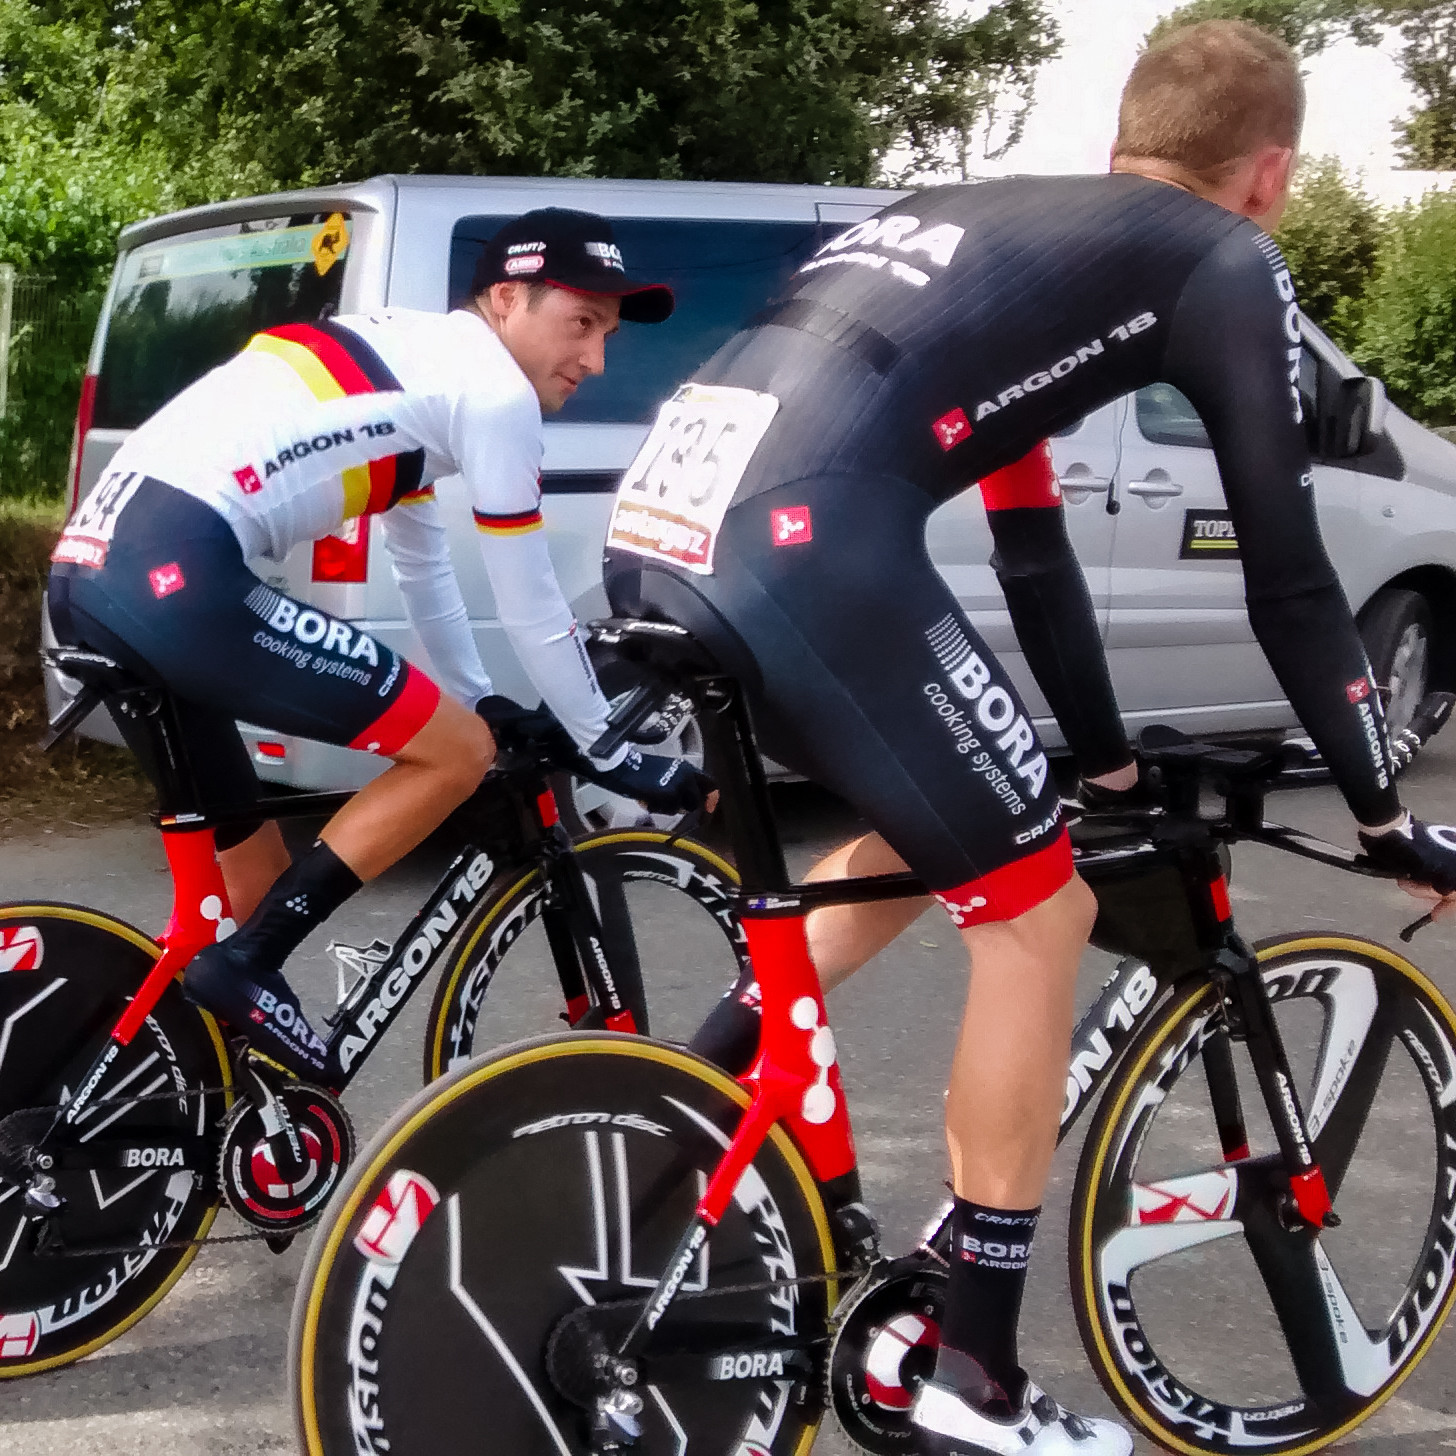 Topbike Tours - Tour de France Tour - Stage 9 TDF 2015 Time Trial